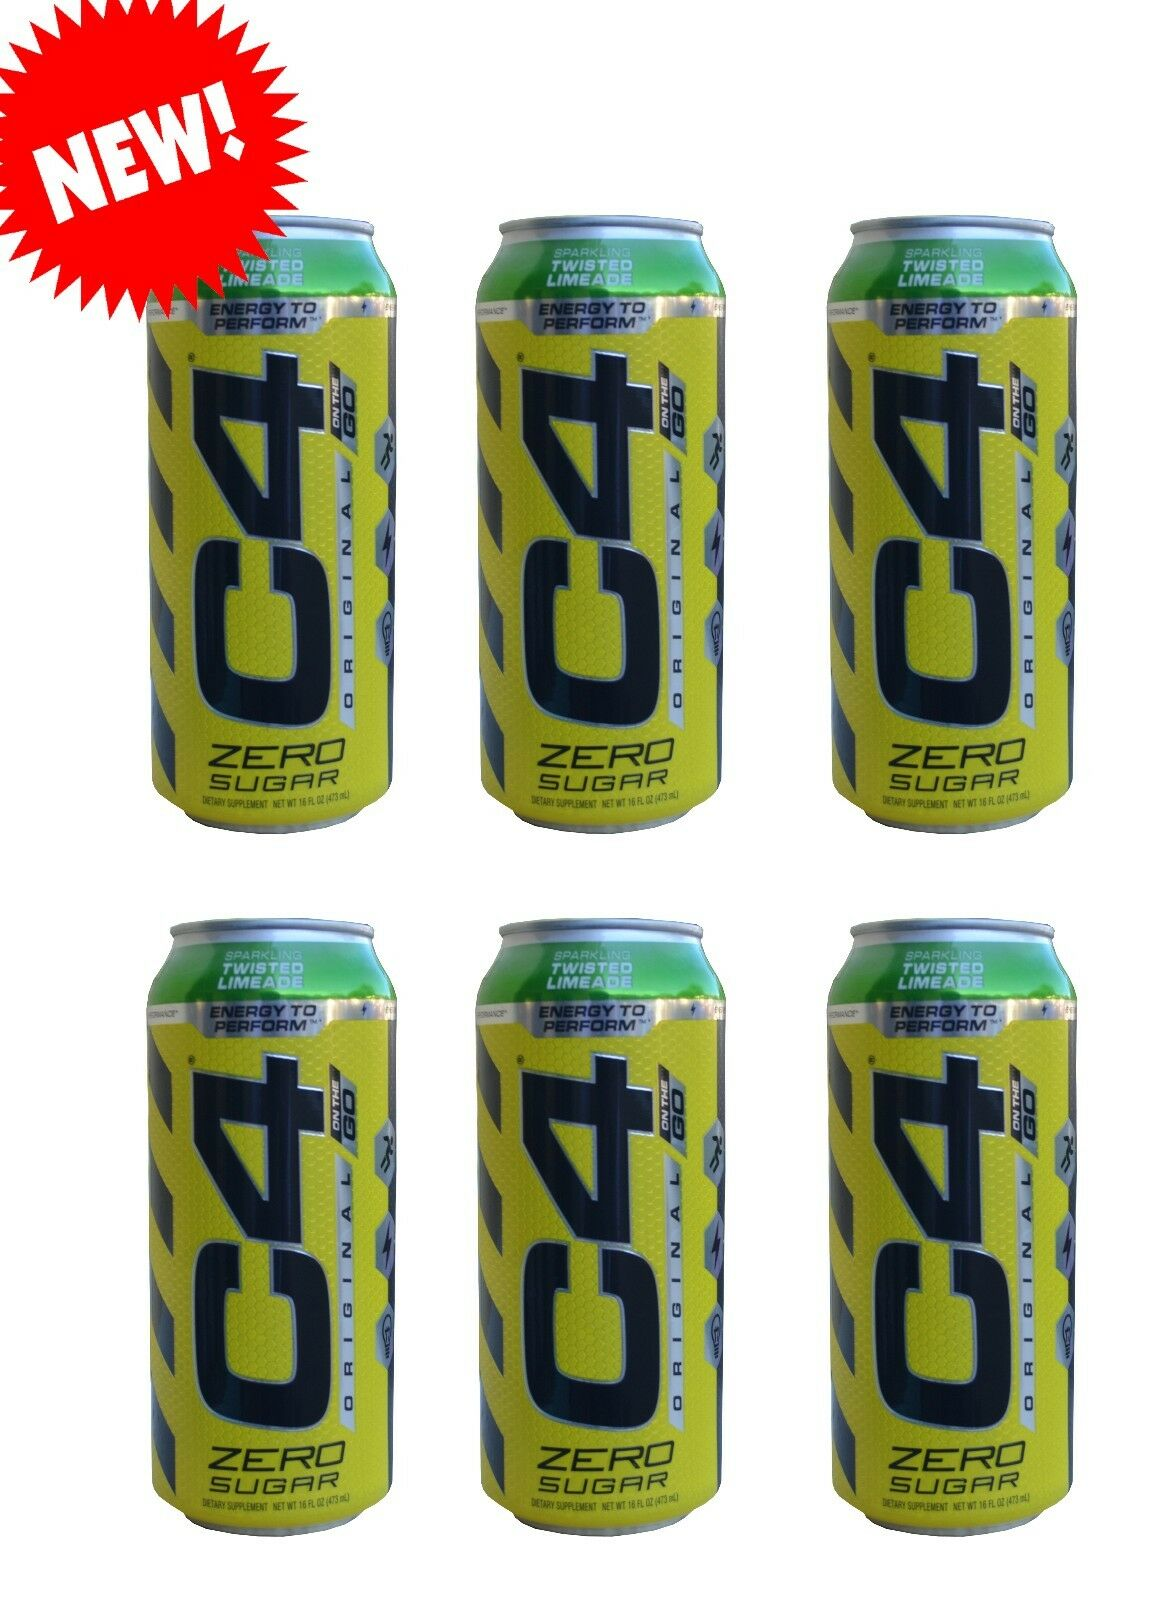 C4 On The Go >> New Cellucor C4 On The Go Sparkling Twisted Limeade Expl Preworkout Vpx Bang